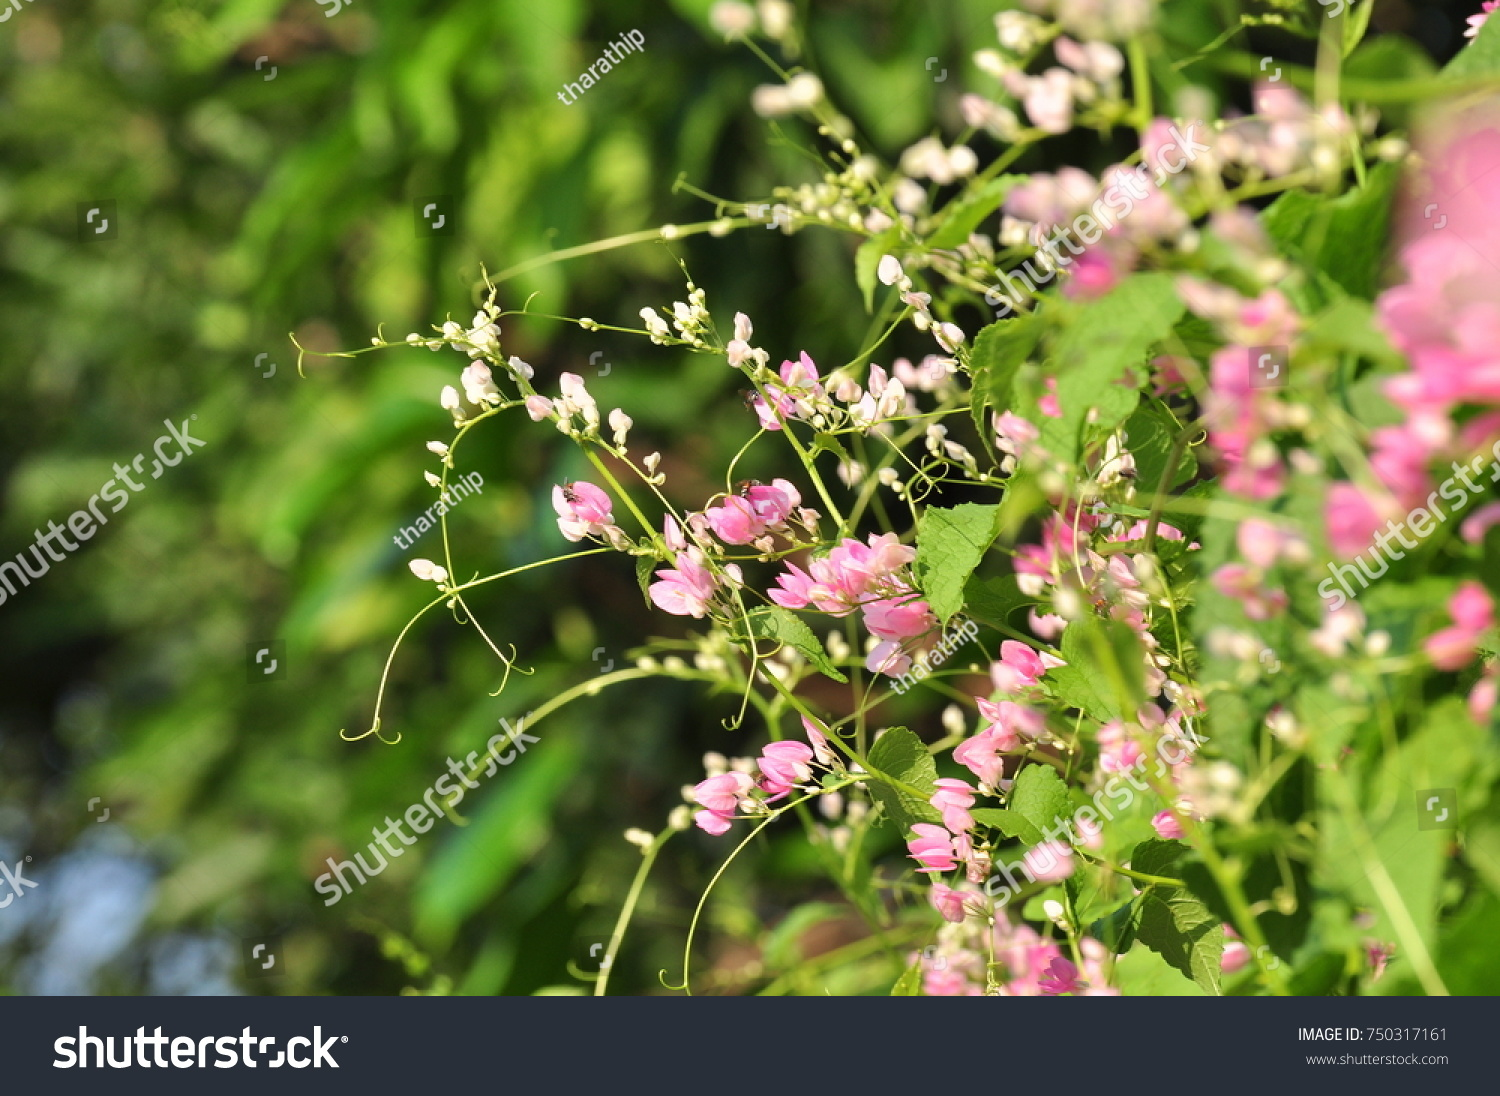 Beautiful Flowers And Grass In Nature On A Sunny Day Pink Flowers